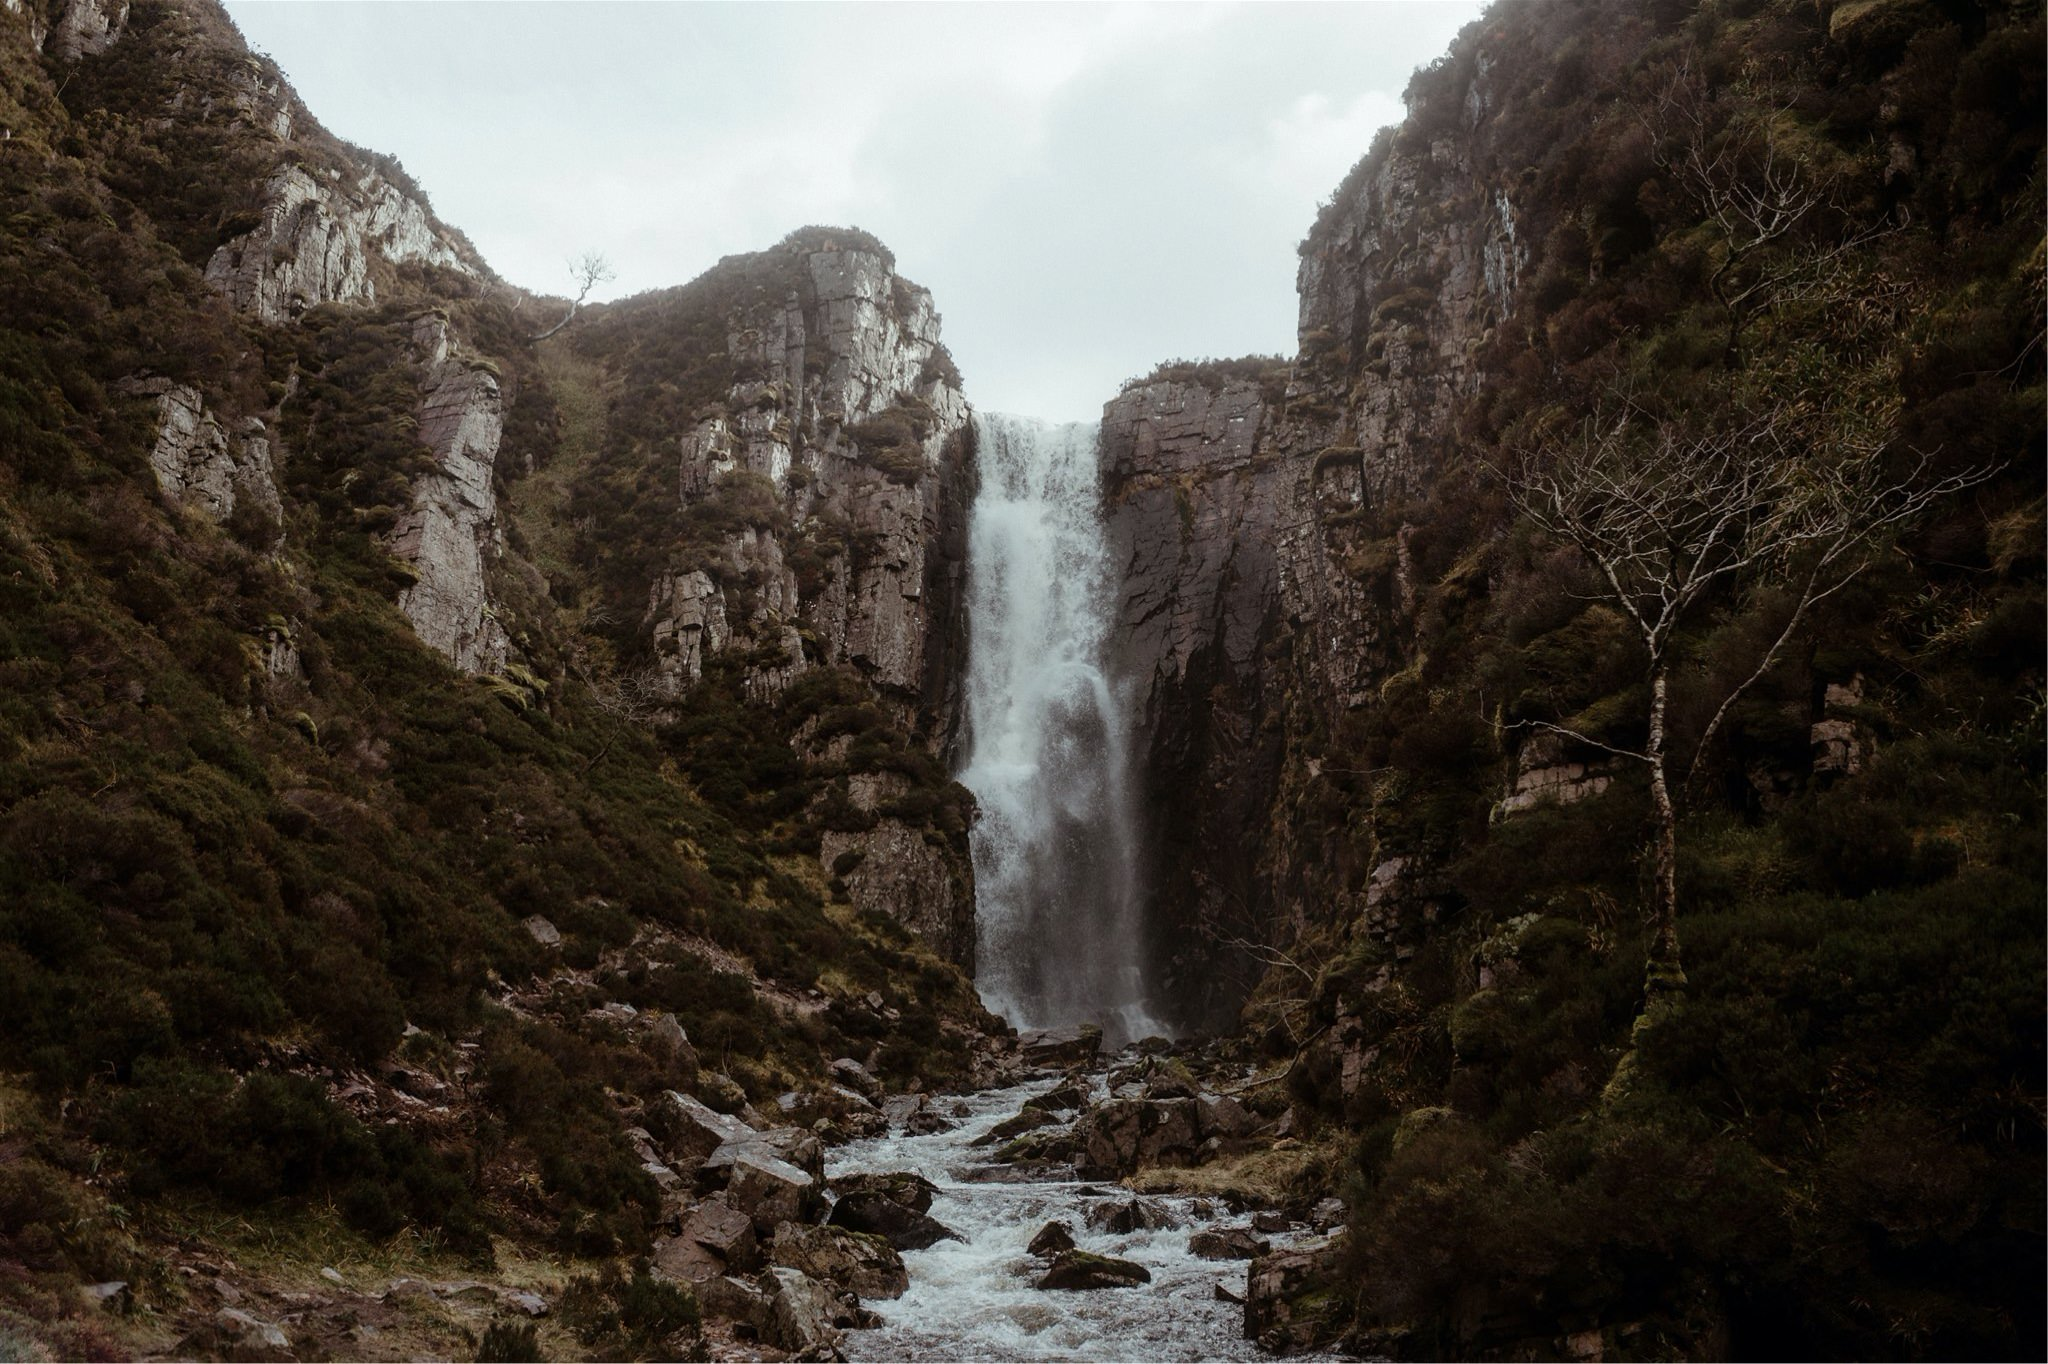 Beautiful waterfall and gorge in Assynt, Scotland